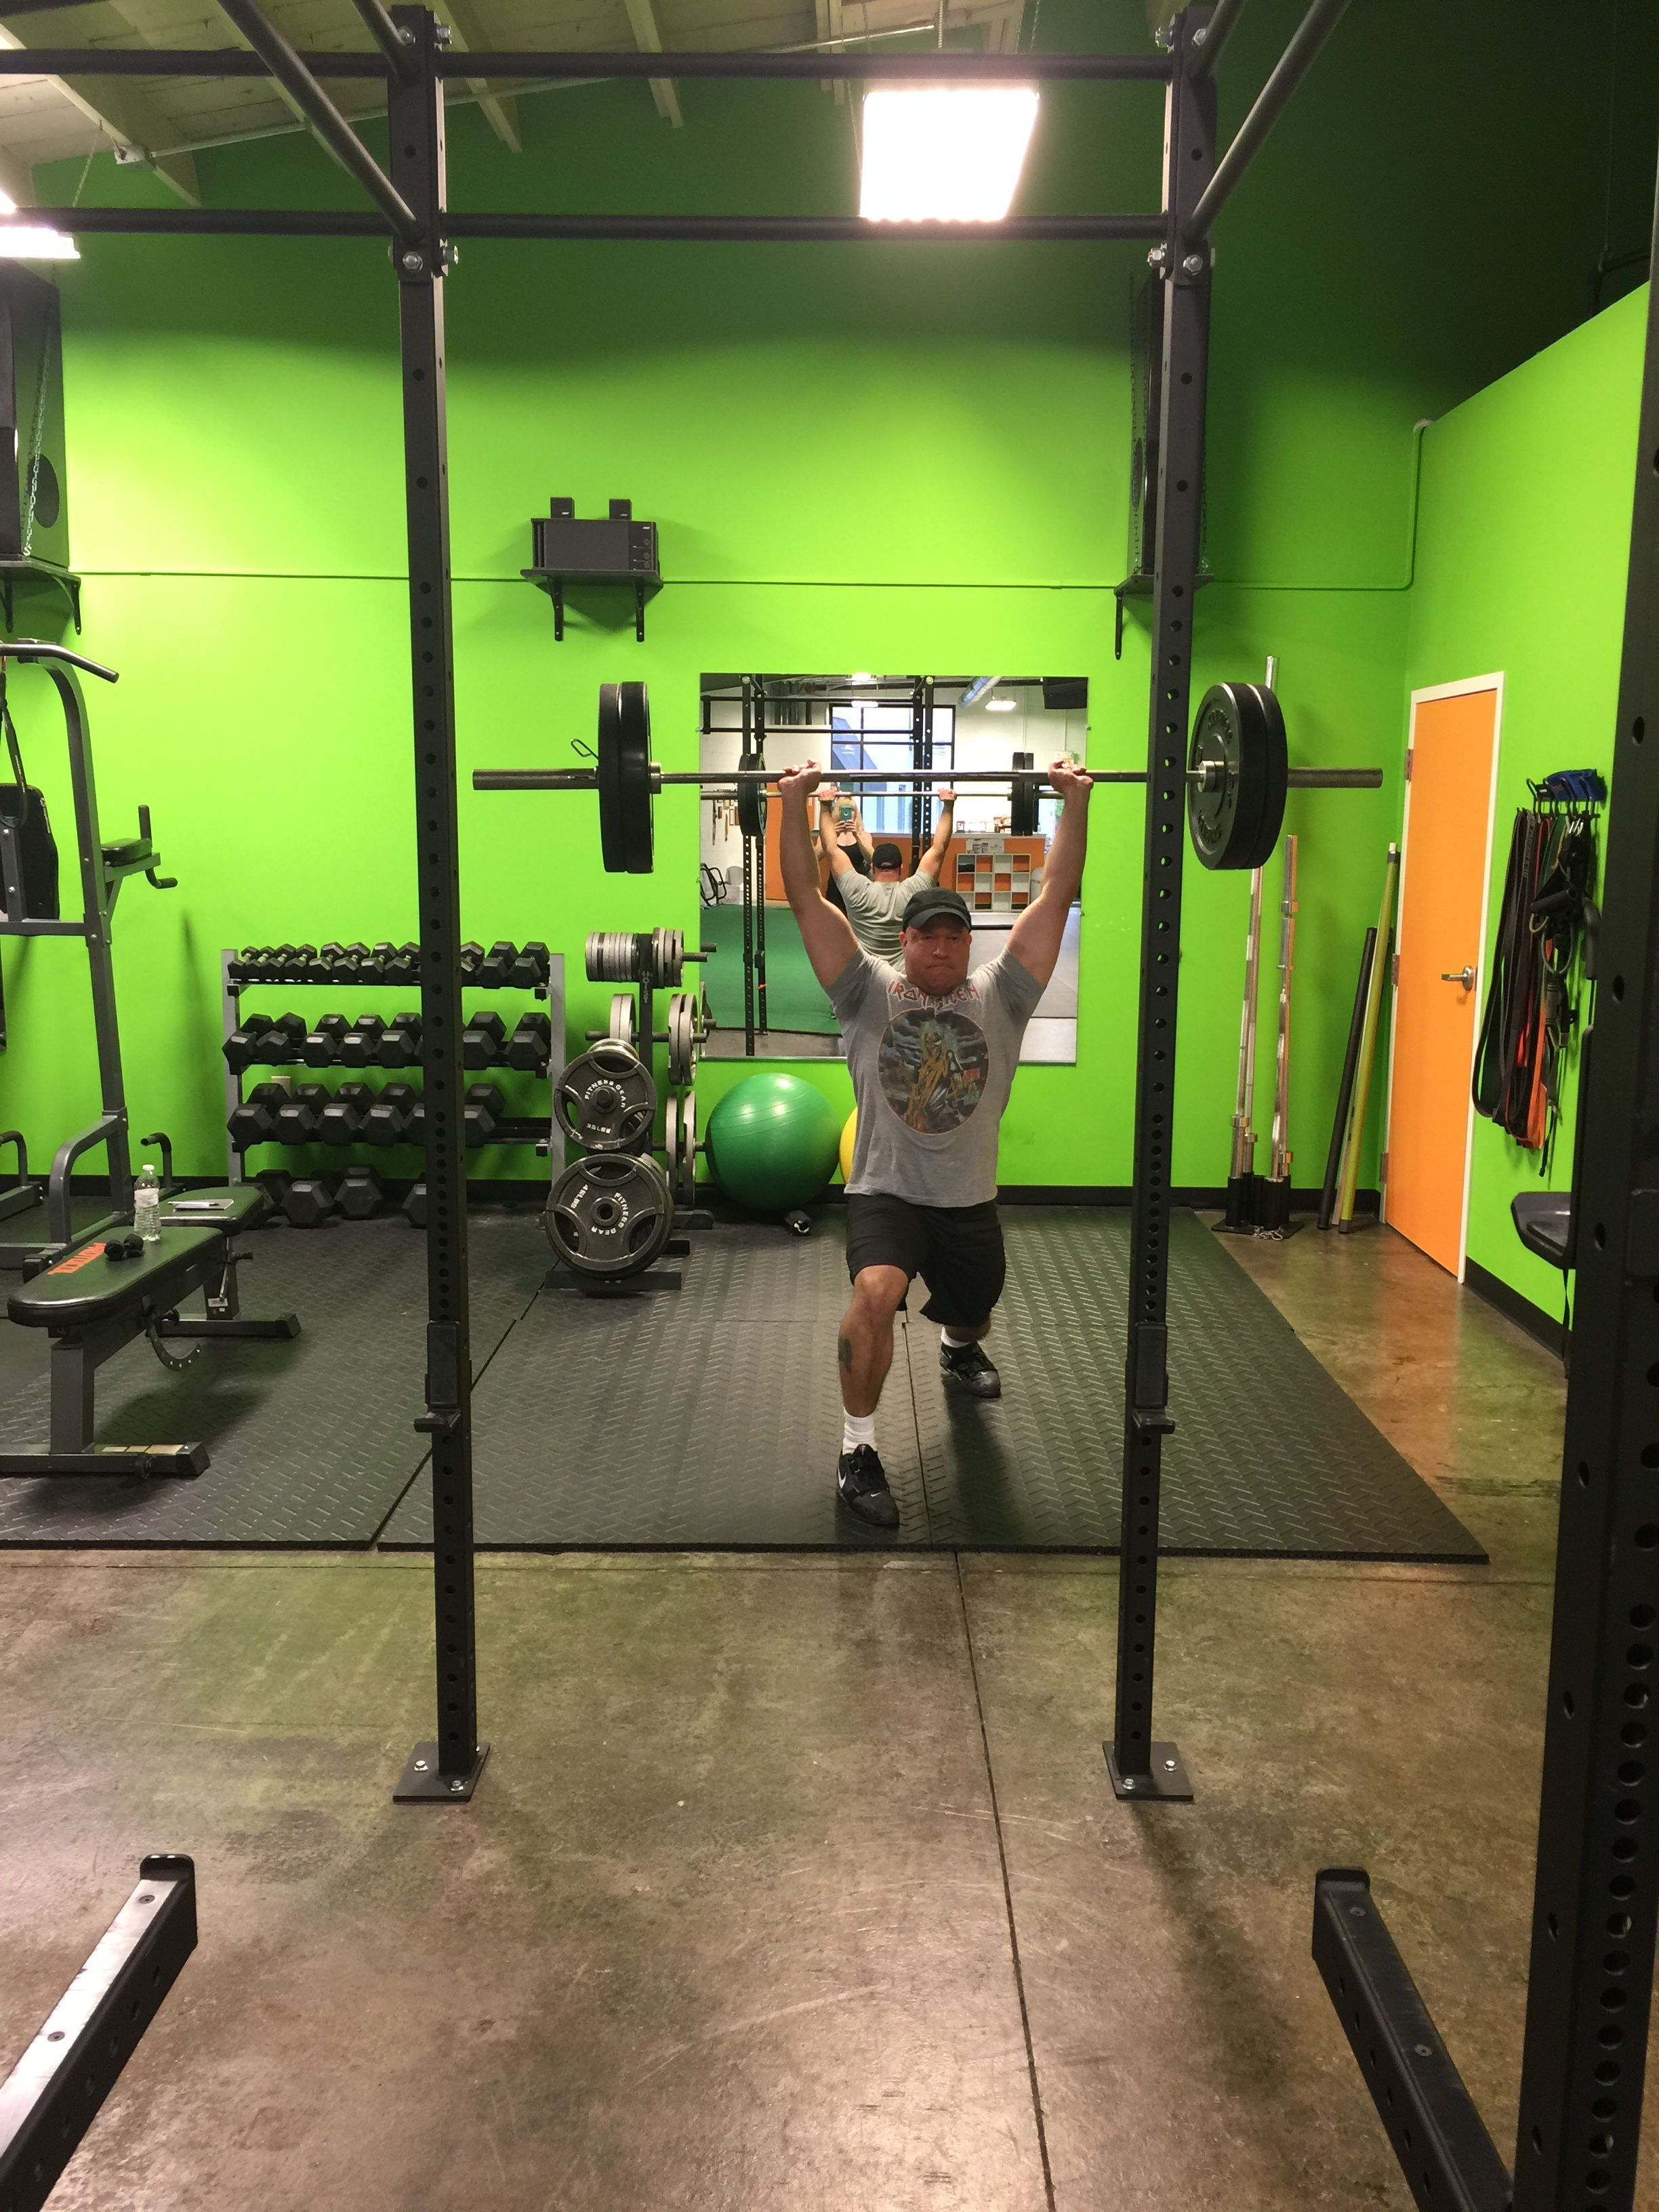 Pin By Angela Cucolo On Personal Best Fitness Studio Personal Training Studio Fun Workouts Fitness Studio